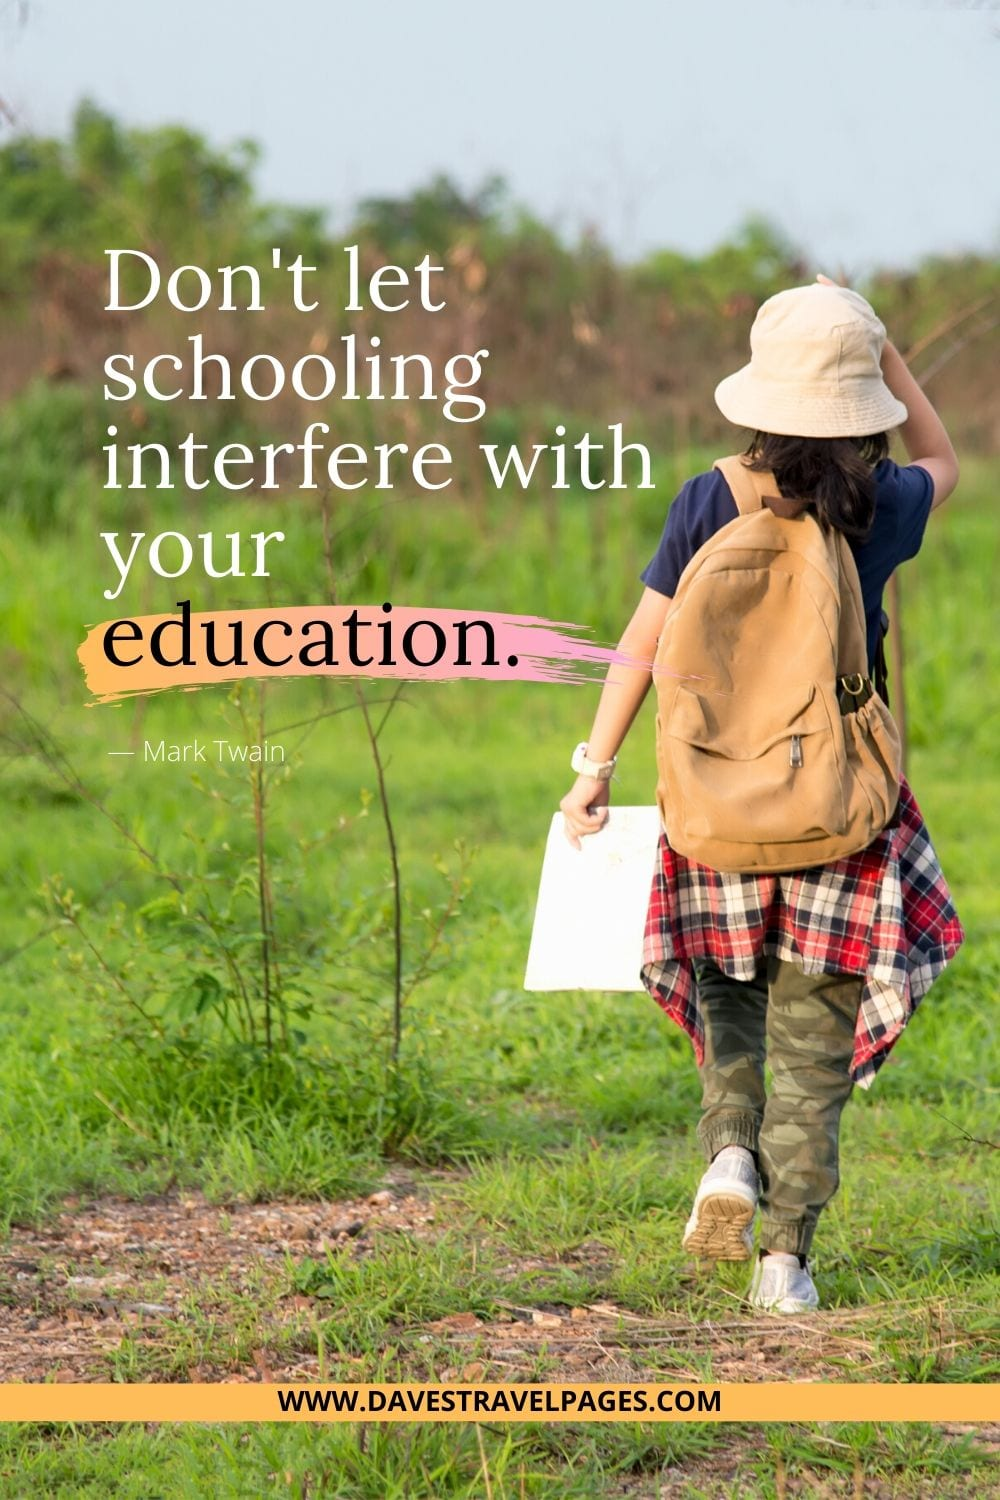 Don't let schooling interfere with your education. | Mark twain